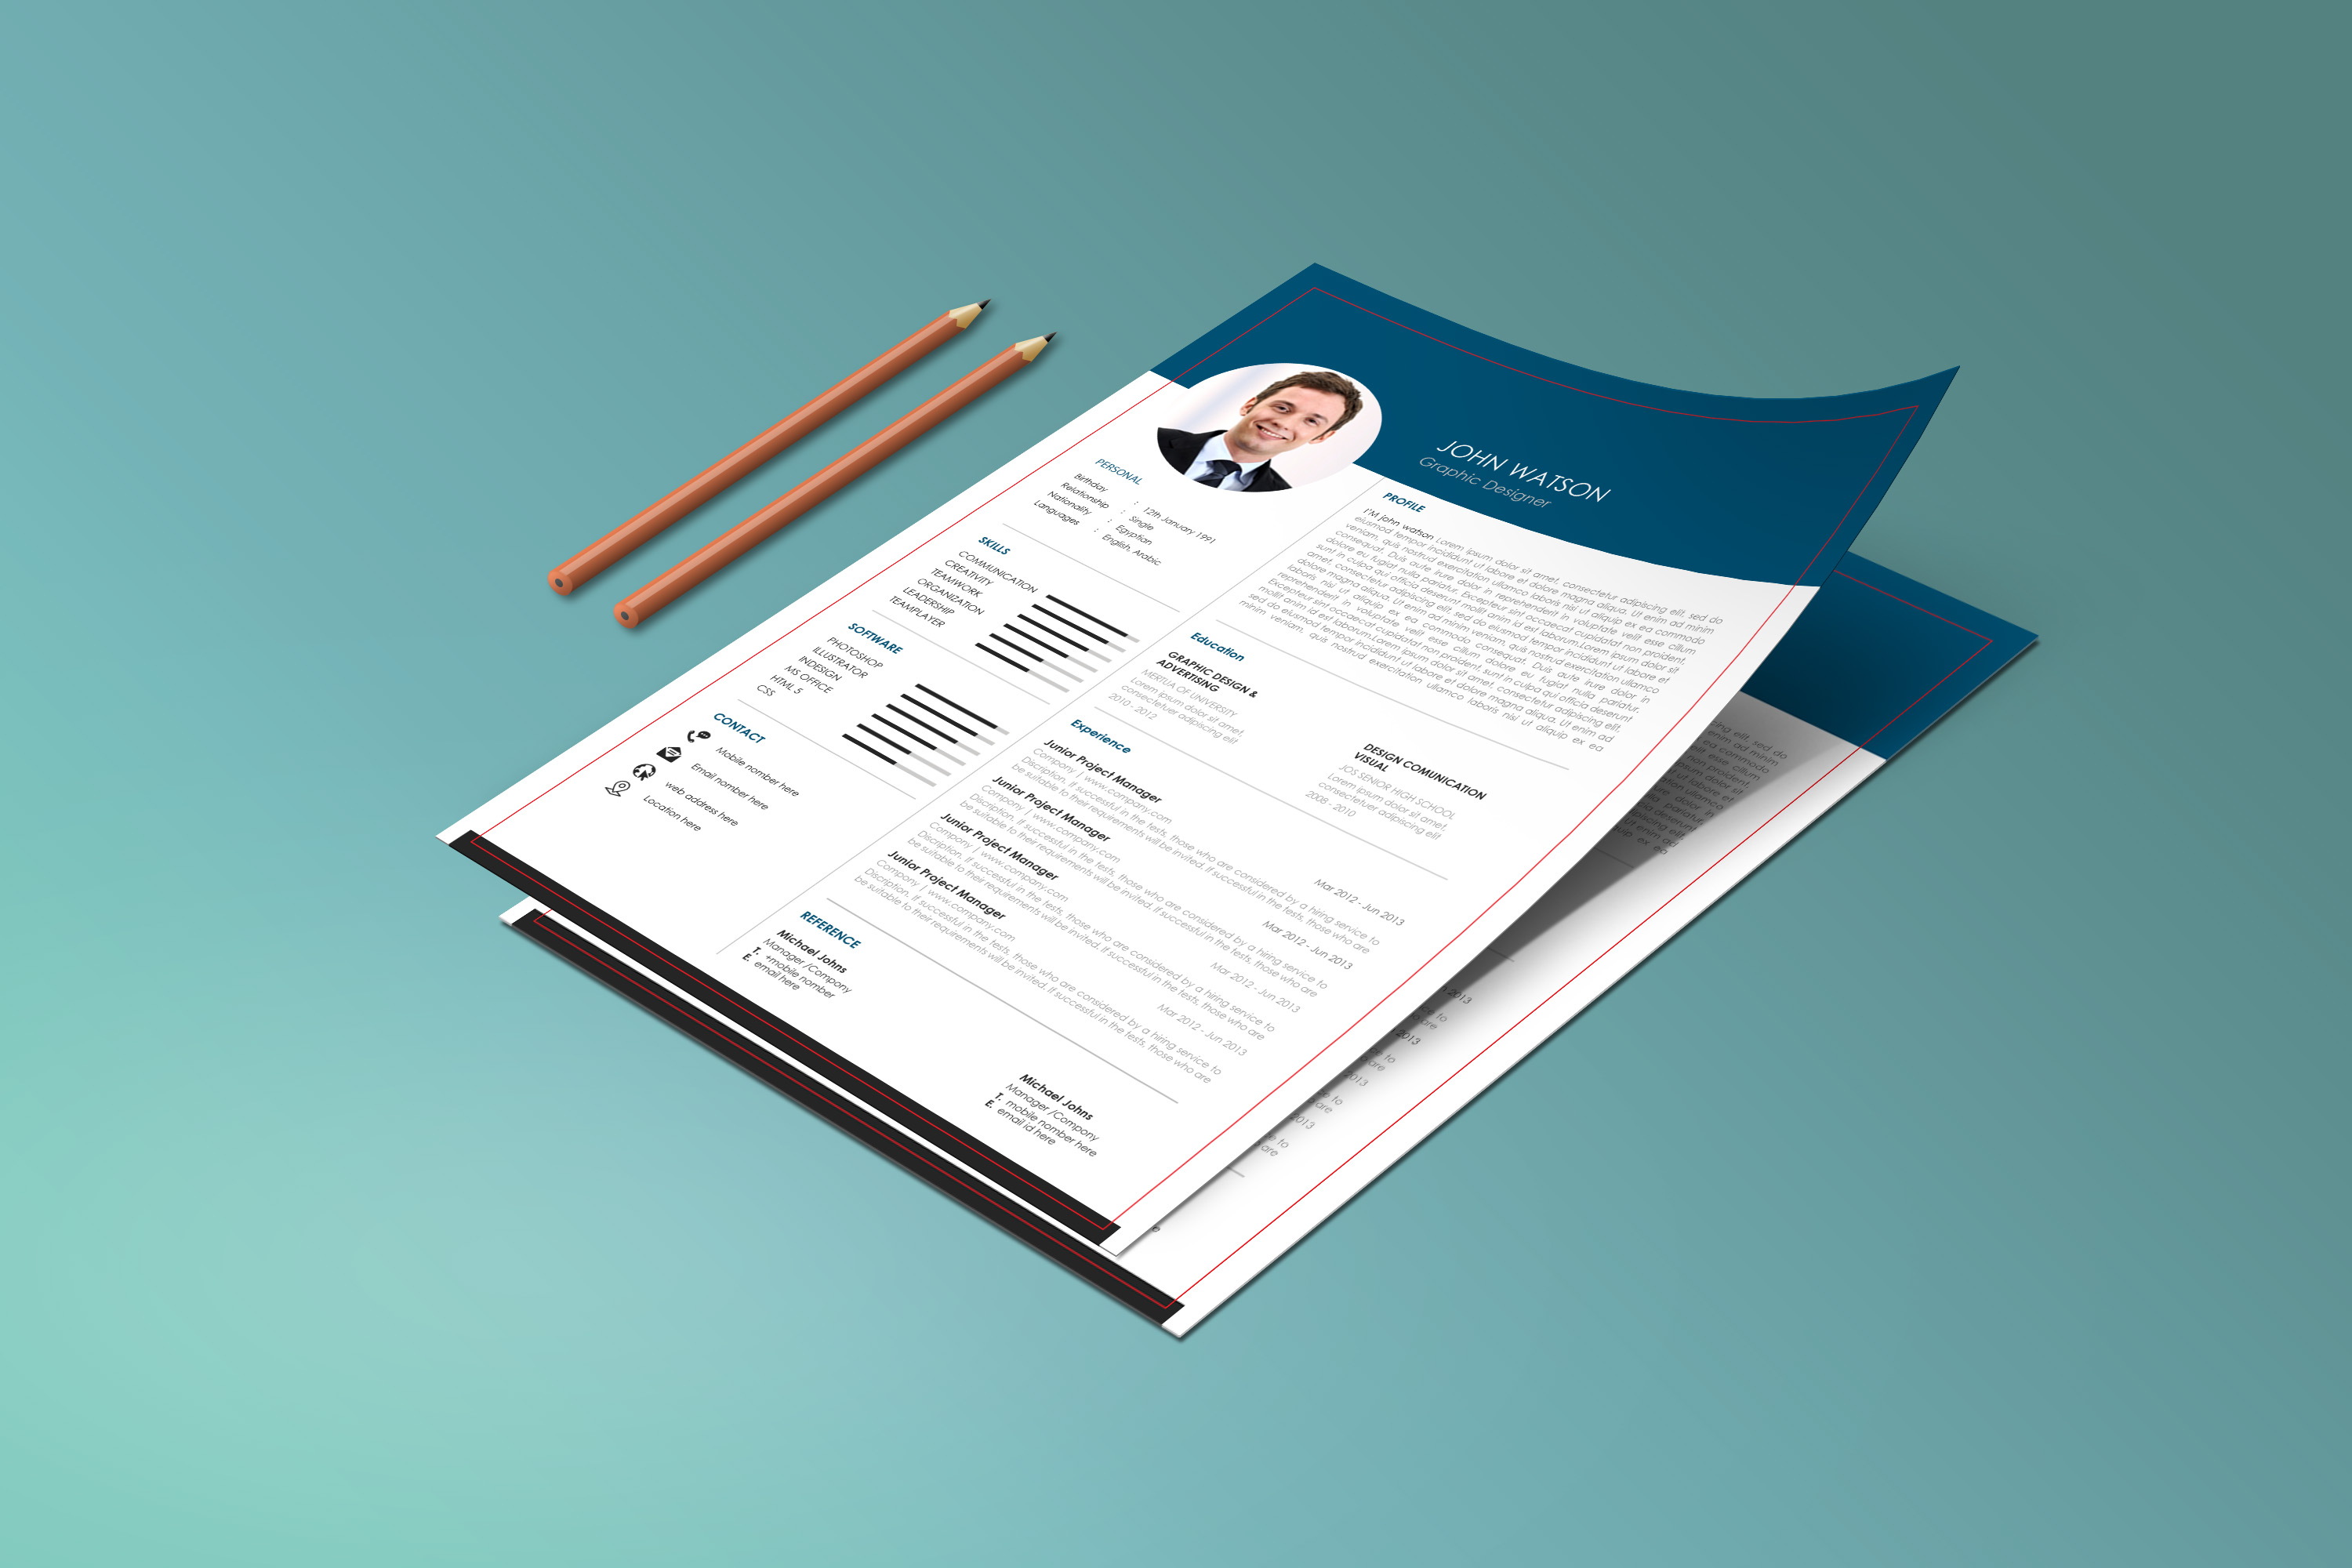 Design Your Resume Cover Letter And Linkedin Profile For 50